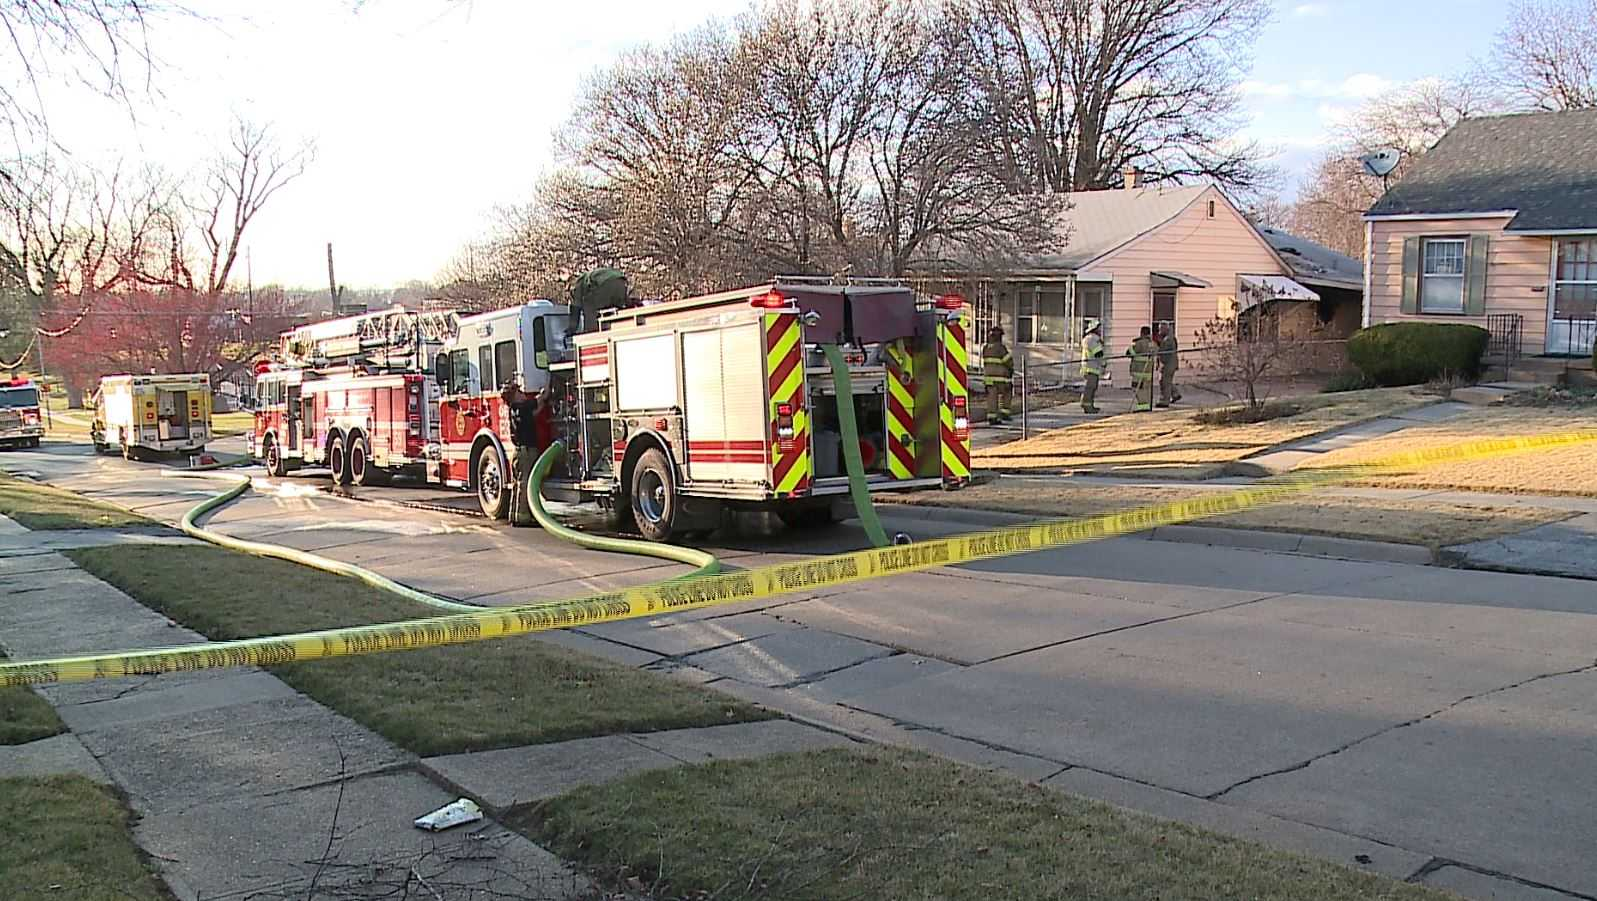 39th and W House Fire